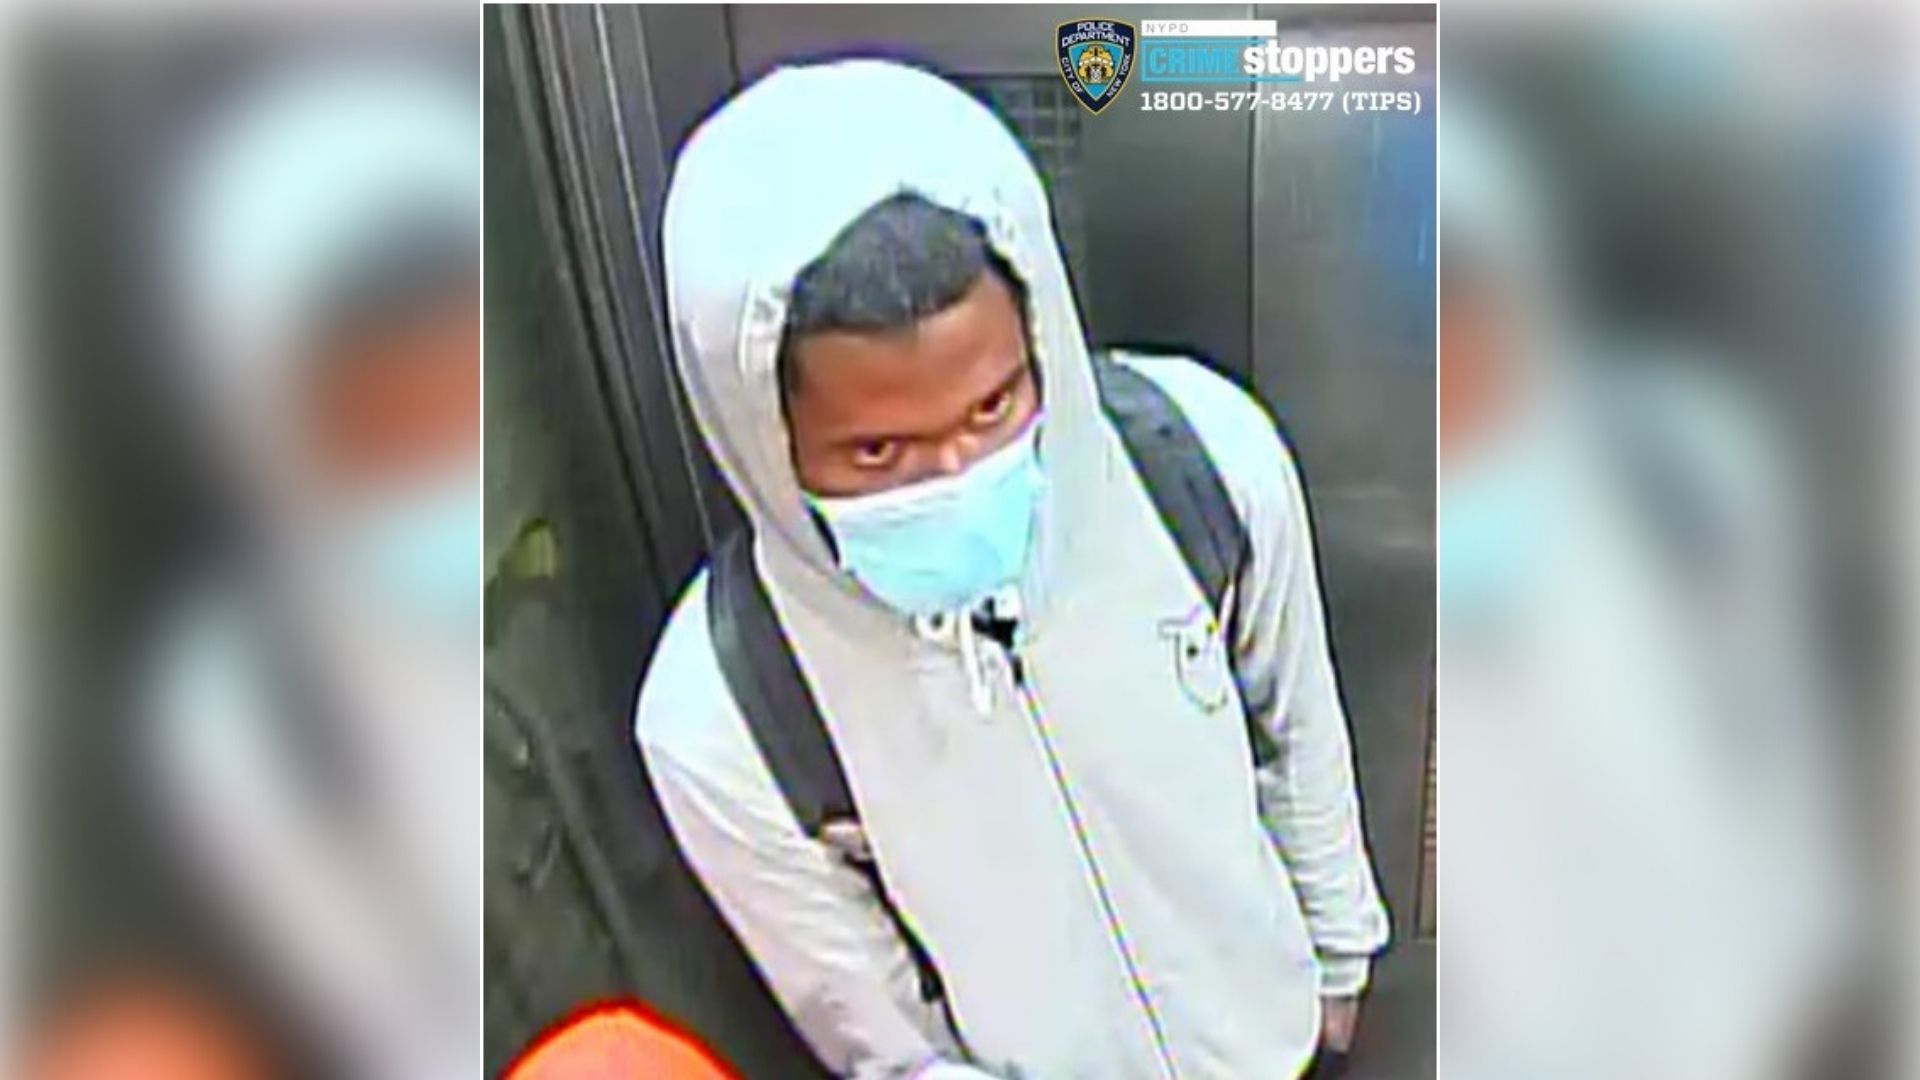 Surveillance image of a male suspect accused of grabbing a 19-year-old woman inappropriately in an elevator at the 125th Street subway station in Harlem, Manhattan on April 12, 2021, according to police.